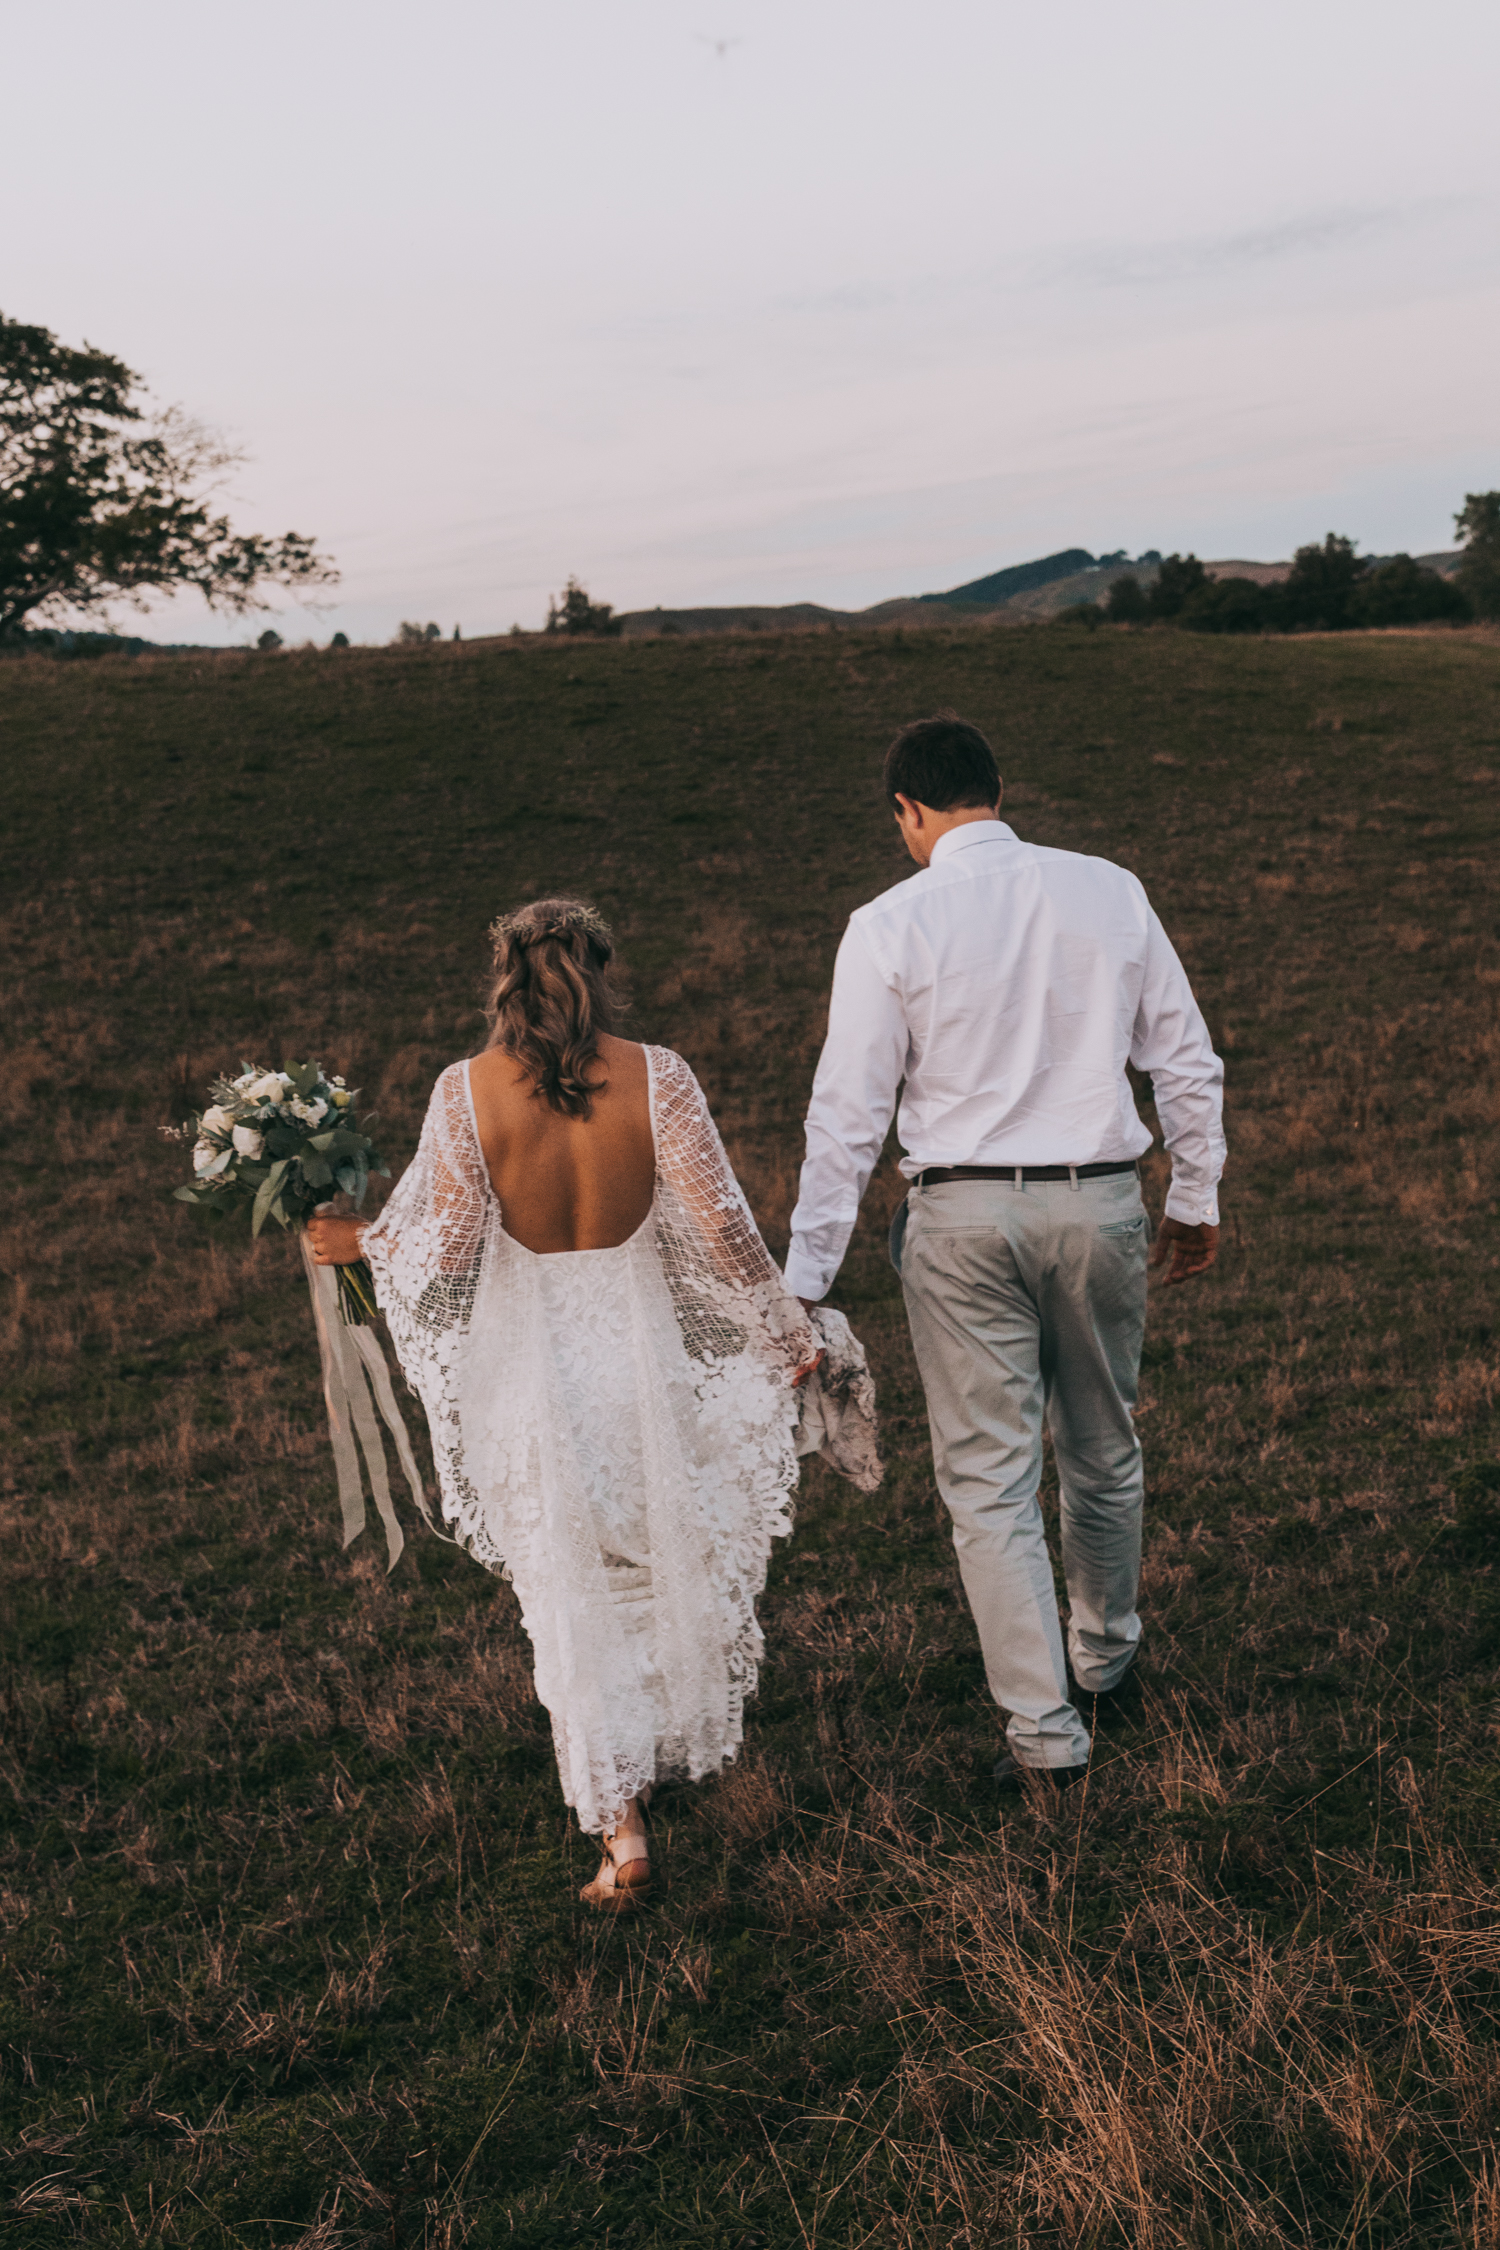 piopio waitomo new zealand wedding photographer